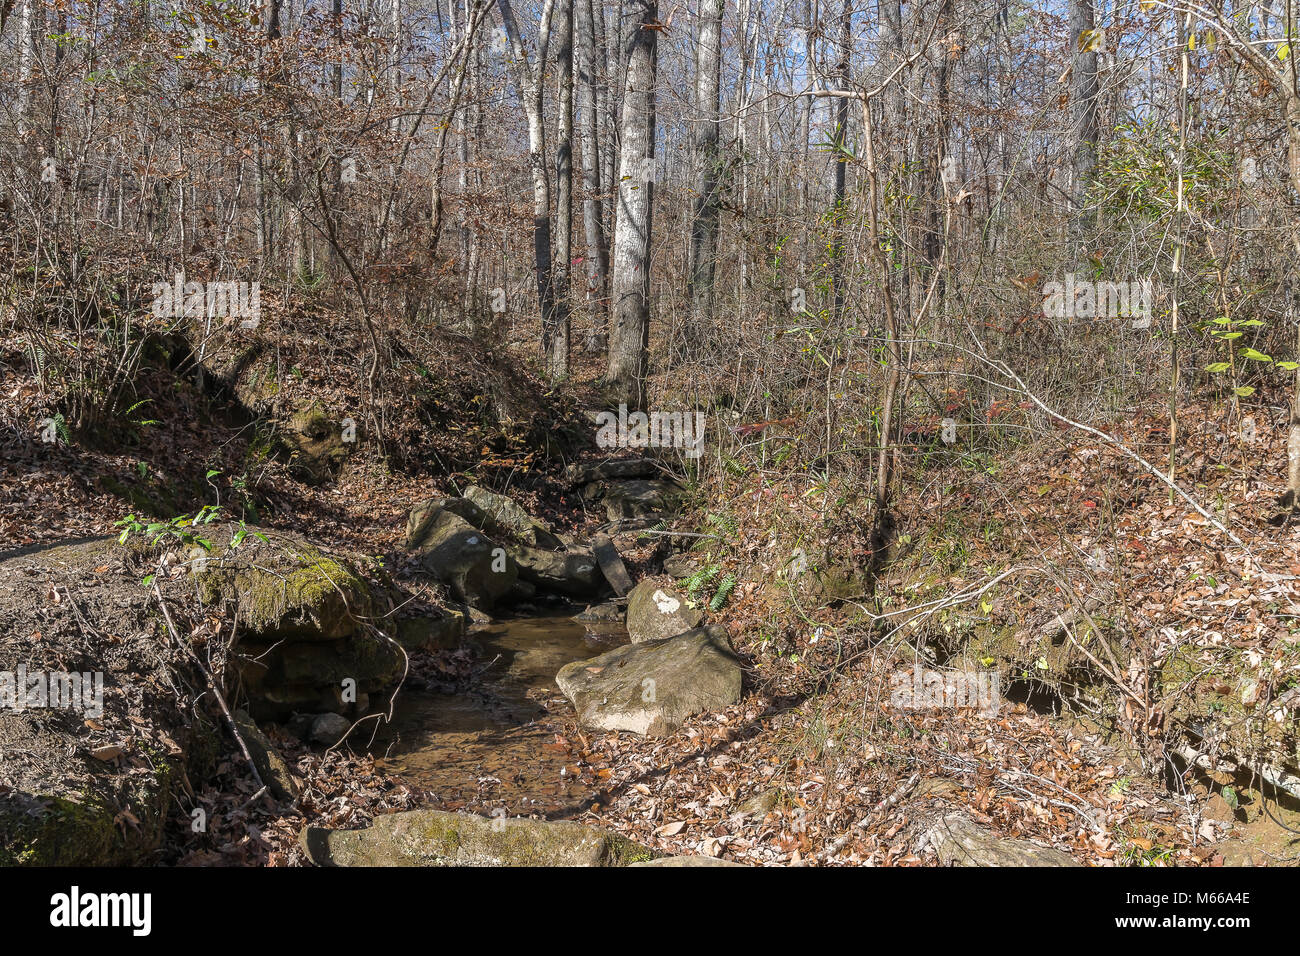 A boulder-lined watershed in an appalachian mountain forest. - Stock Image